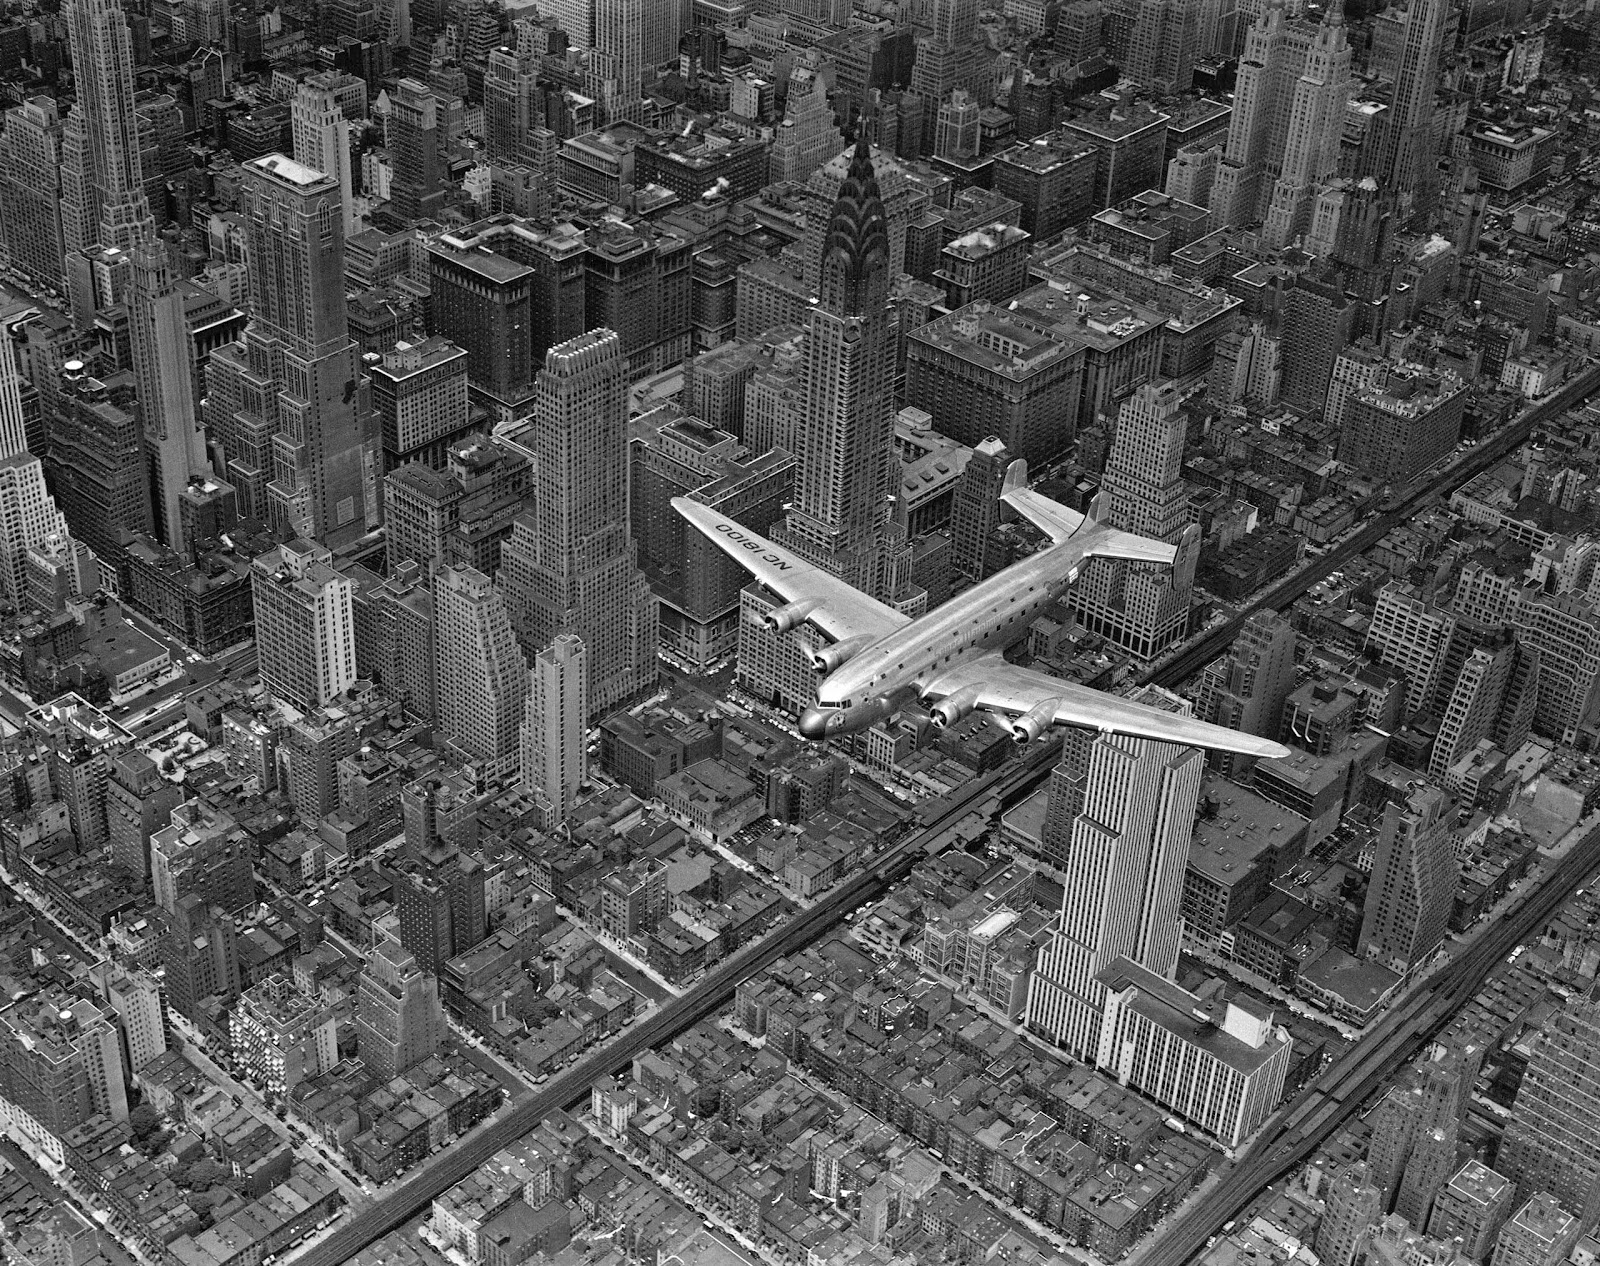 Aerial View Of A DC 4 Passenger Plane Flying Over Midtown Manhattan An Almost Identical Photograph From This Shoot Was Published In The June 19 1939